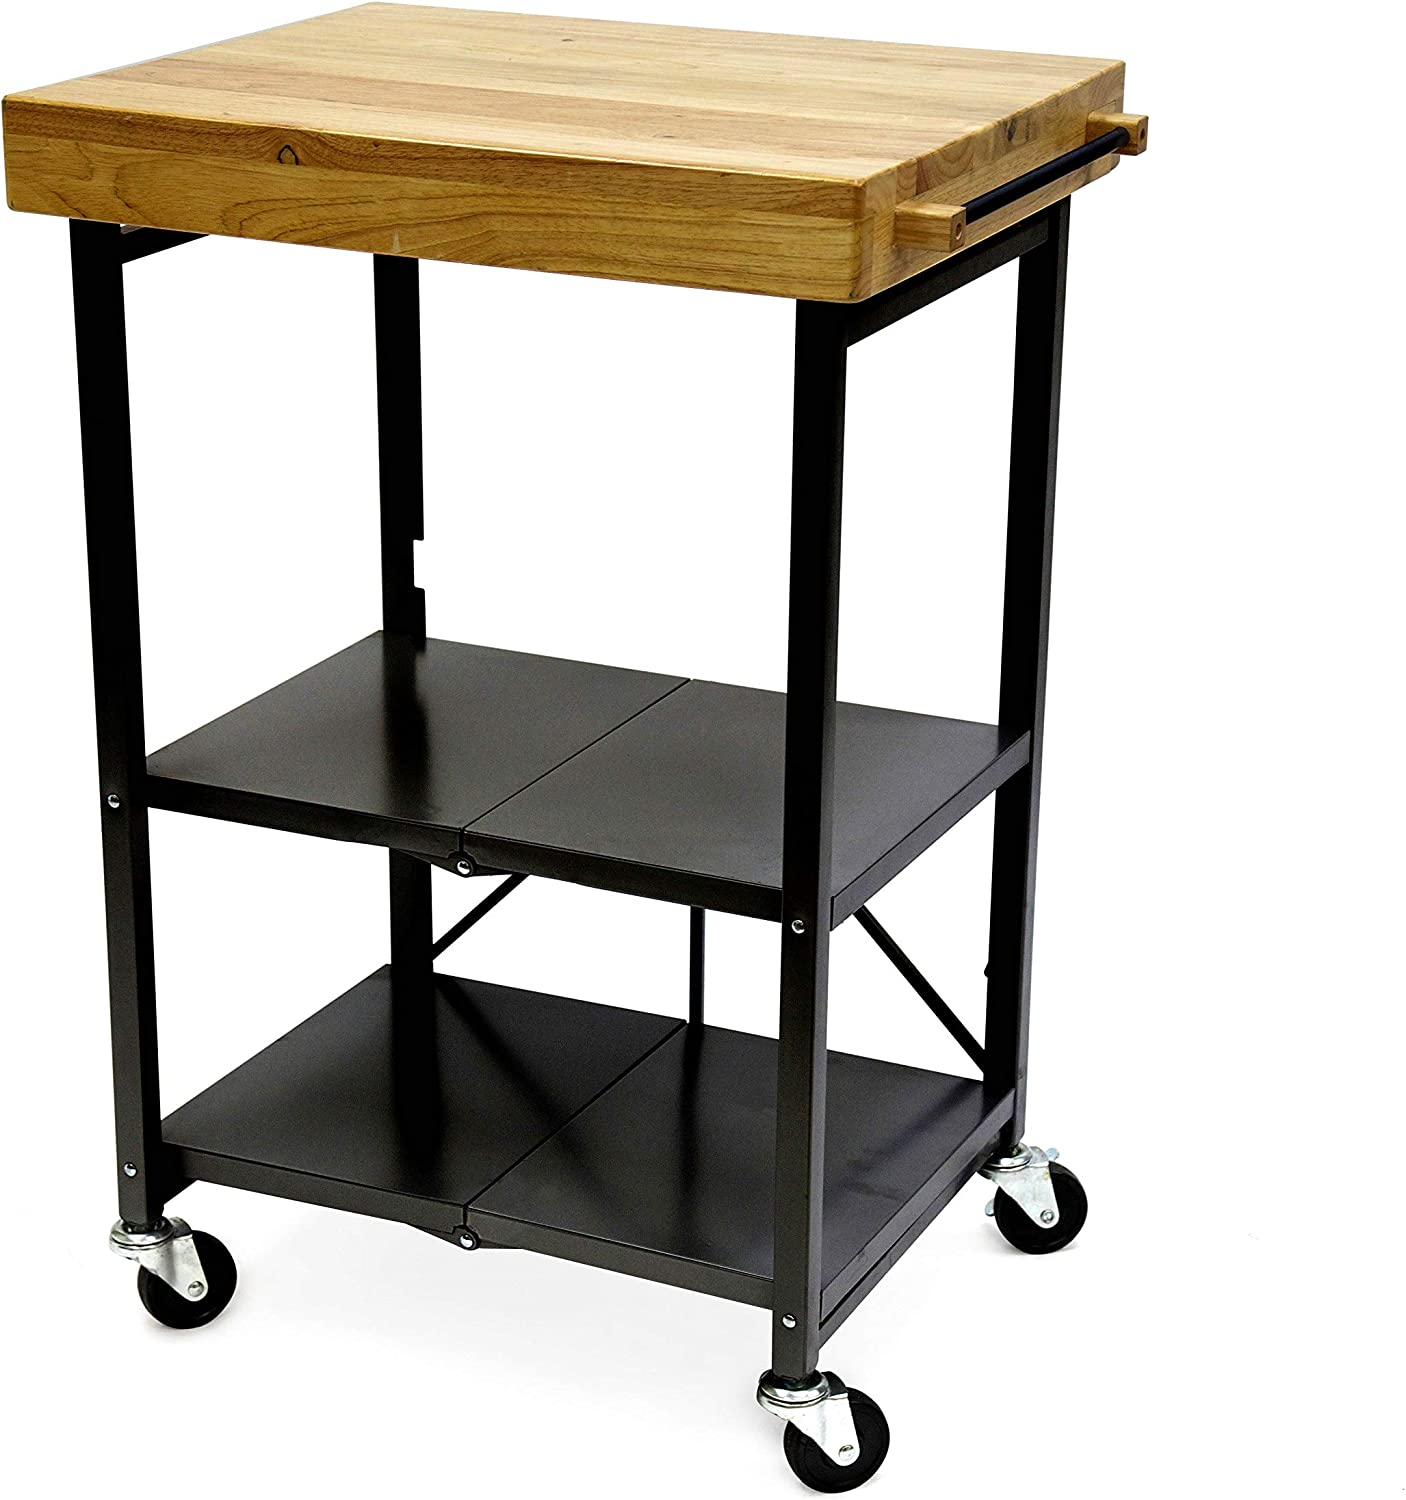 Origami Folding Kitchen Utility Cart on Wheels